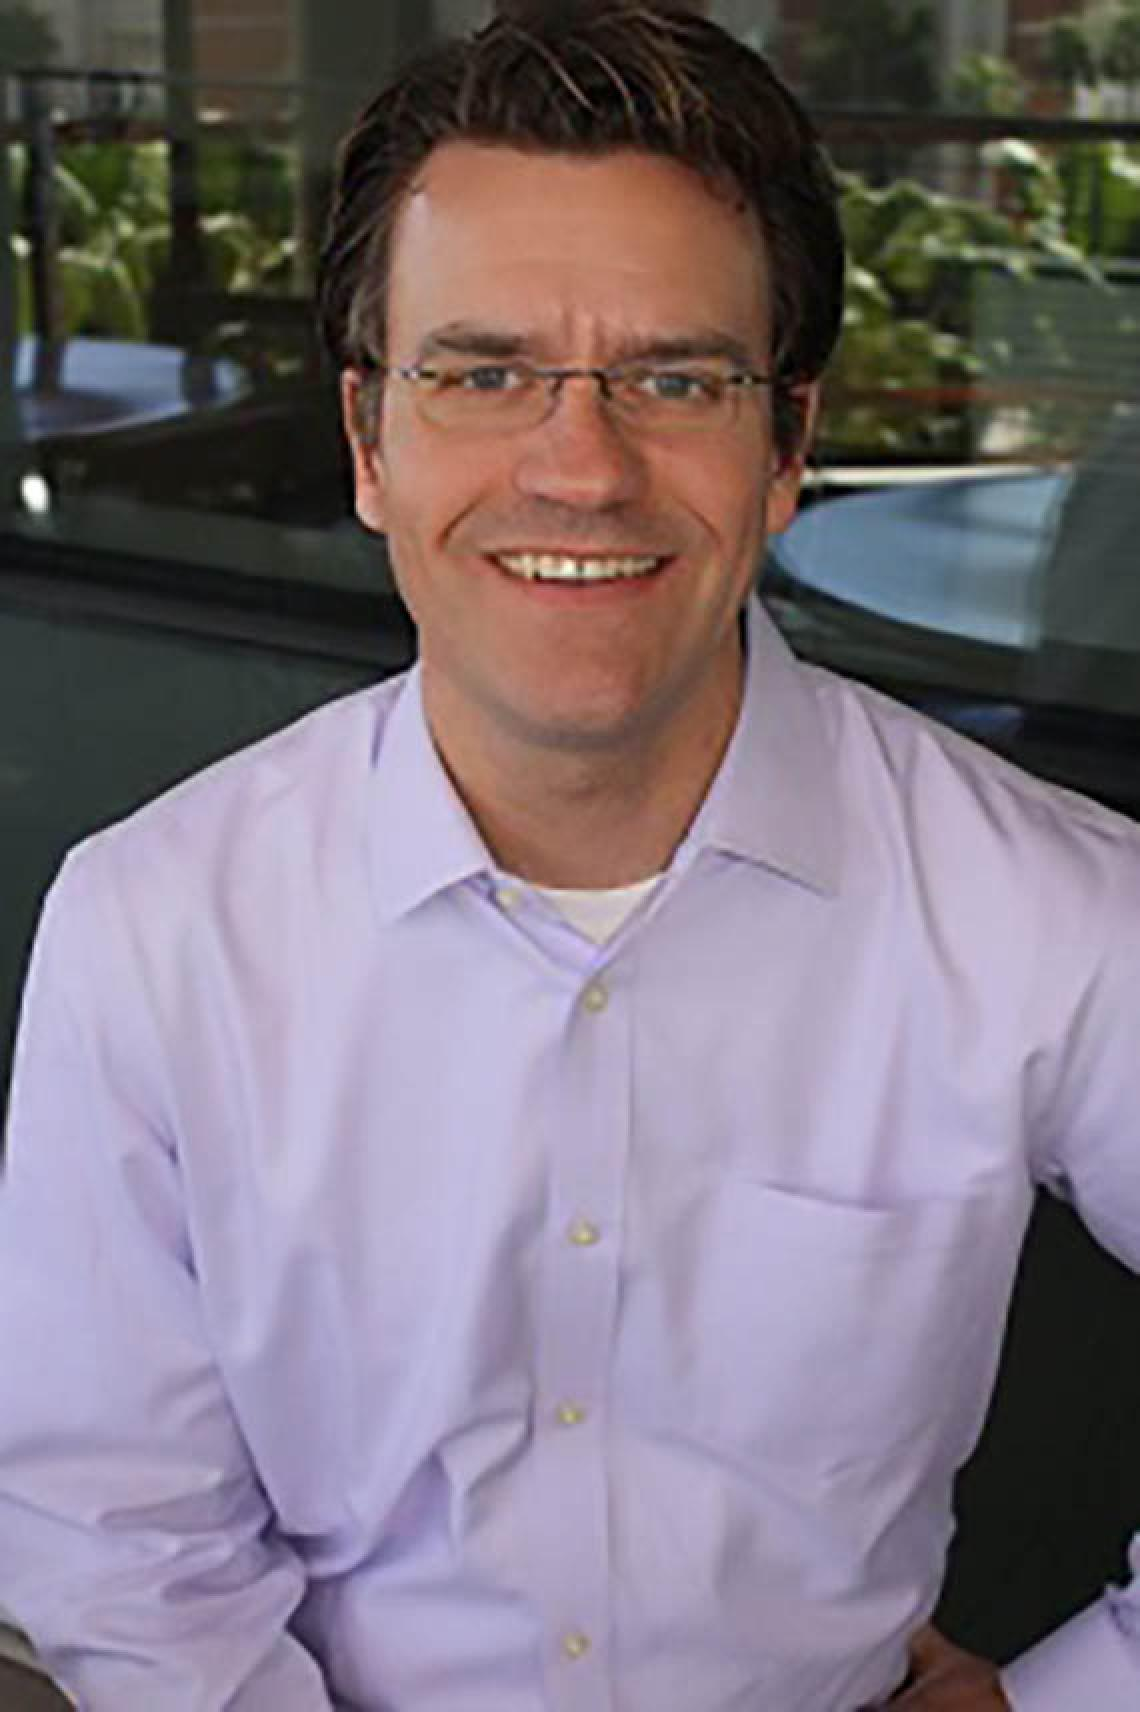 Dr. Stephen Russell smiling for photo